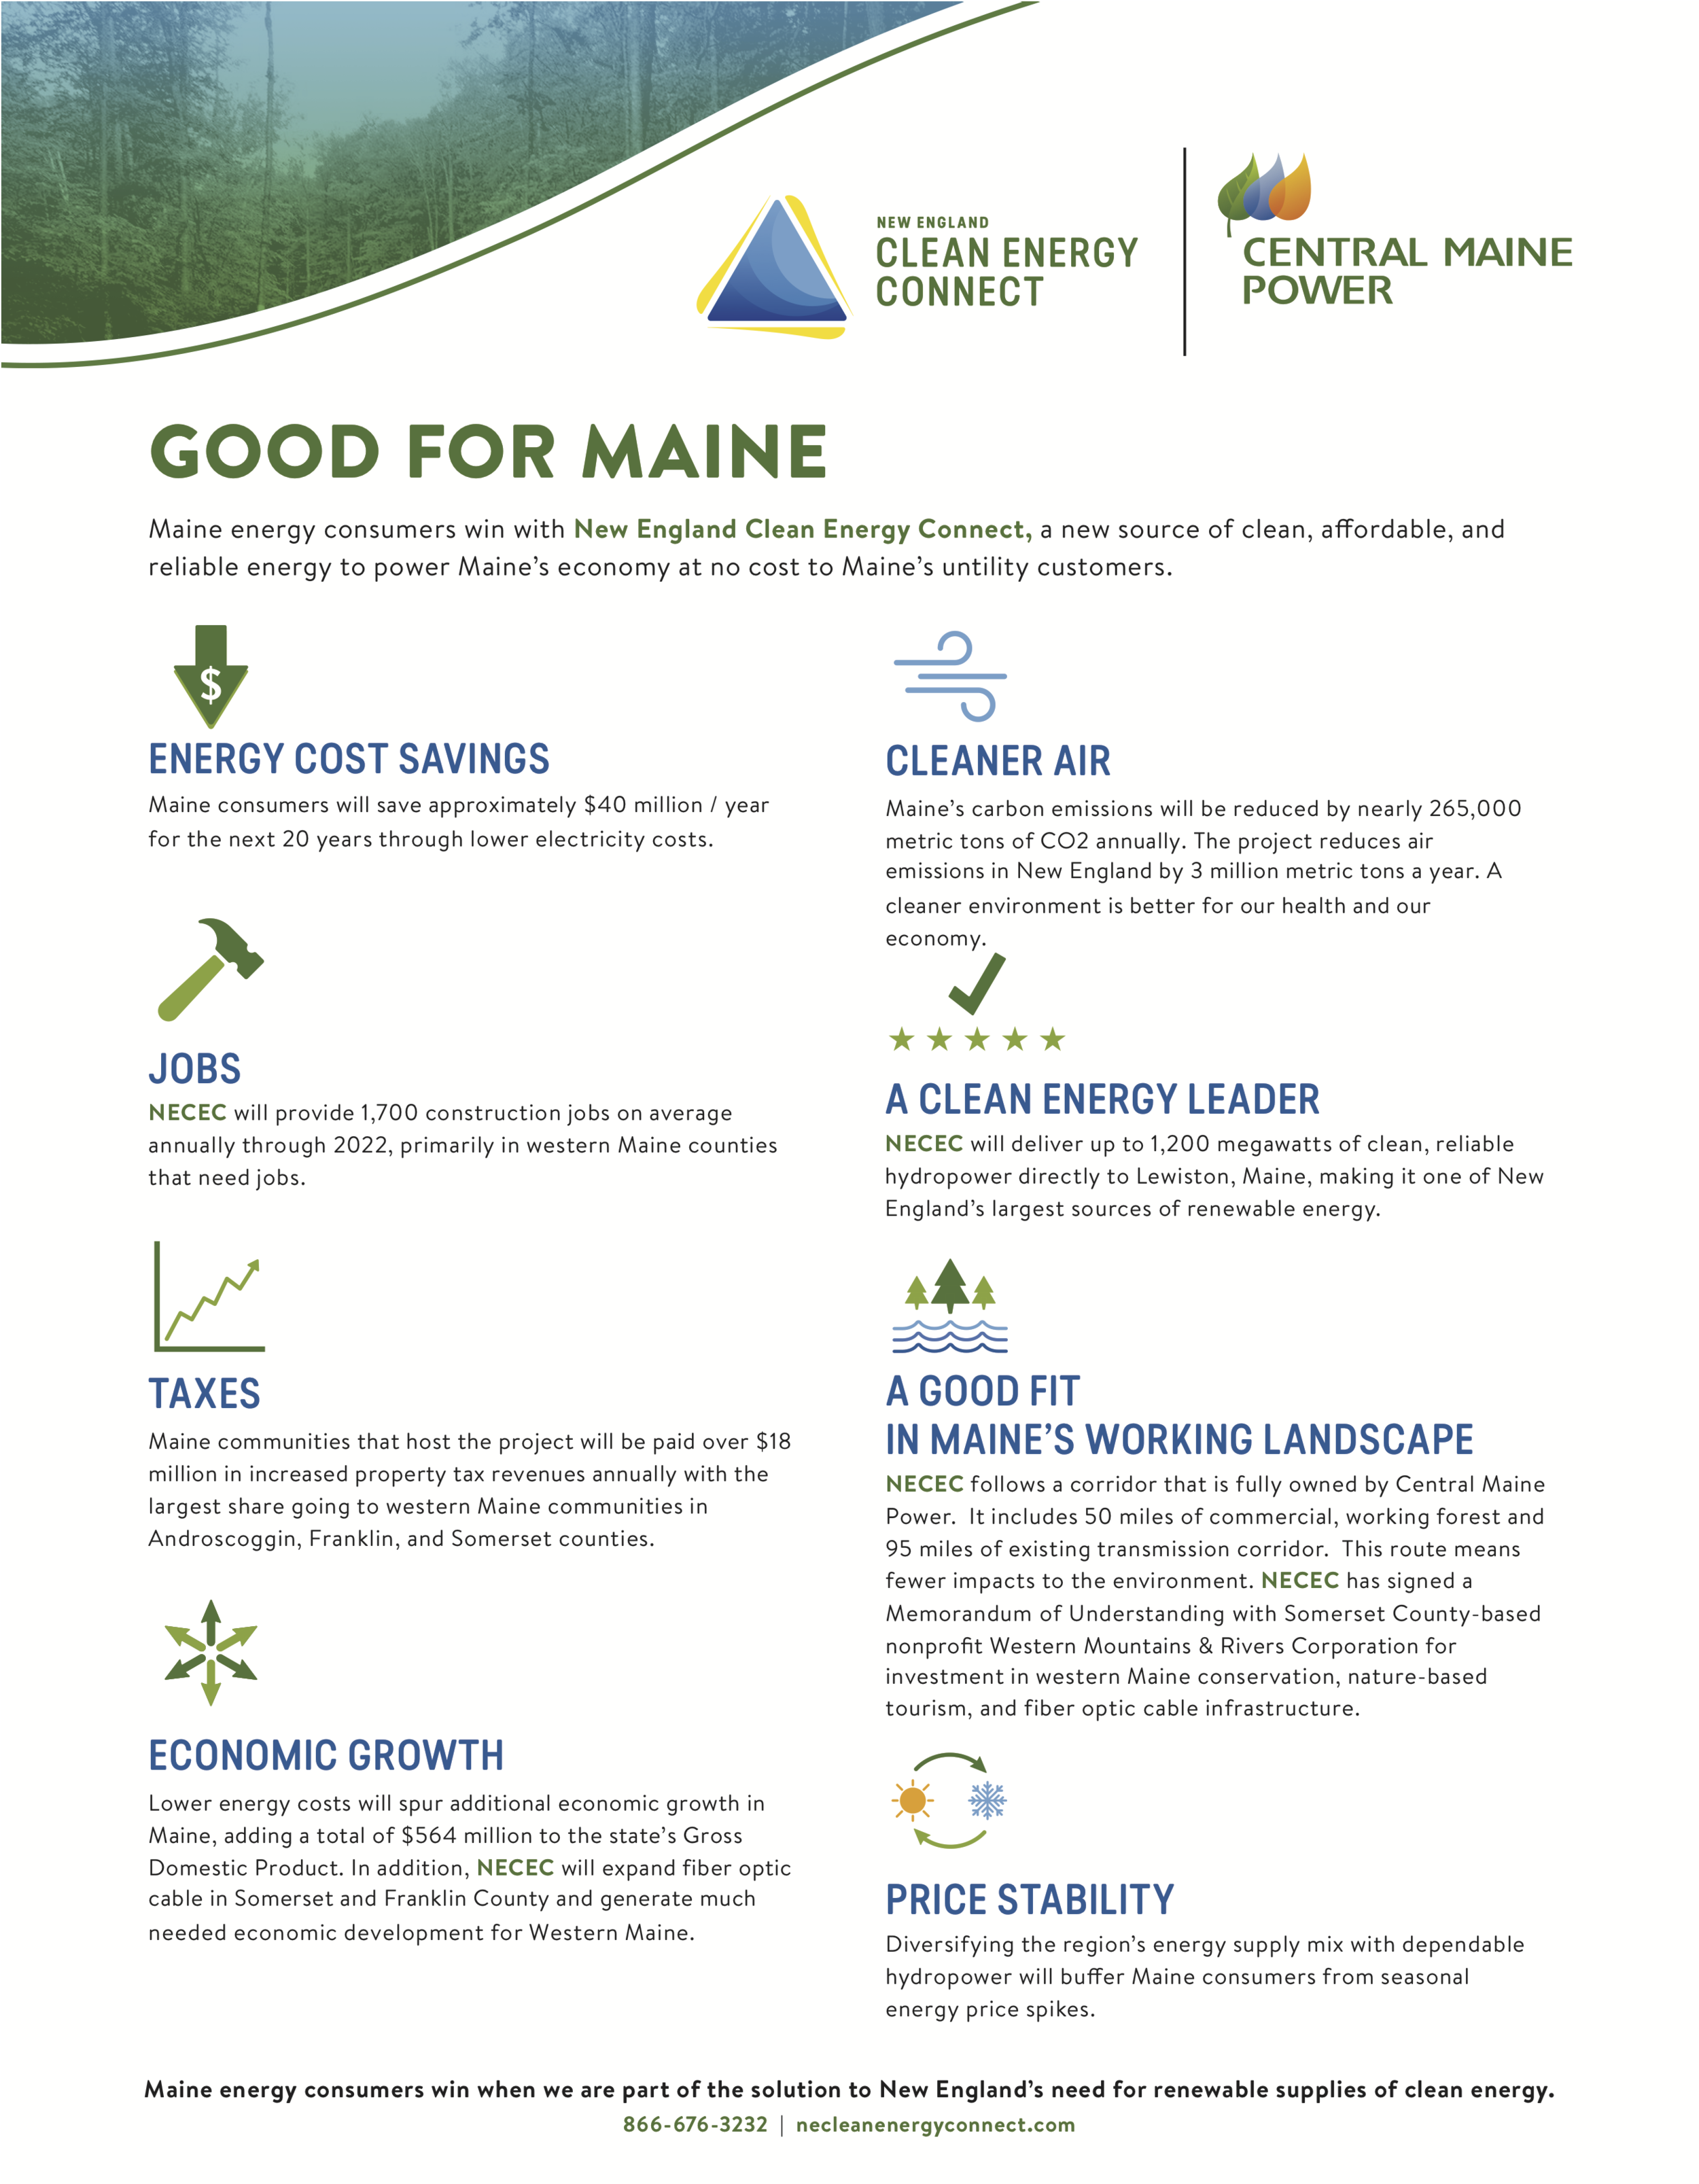 NECEC_OnePager_Good for Maine.png